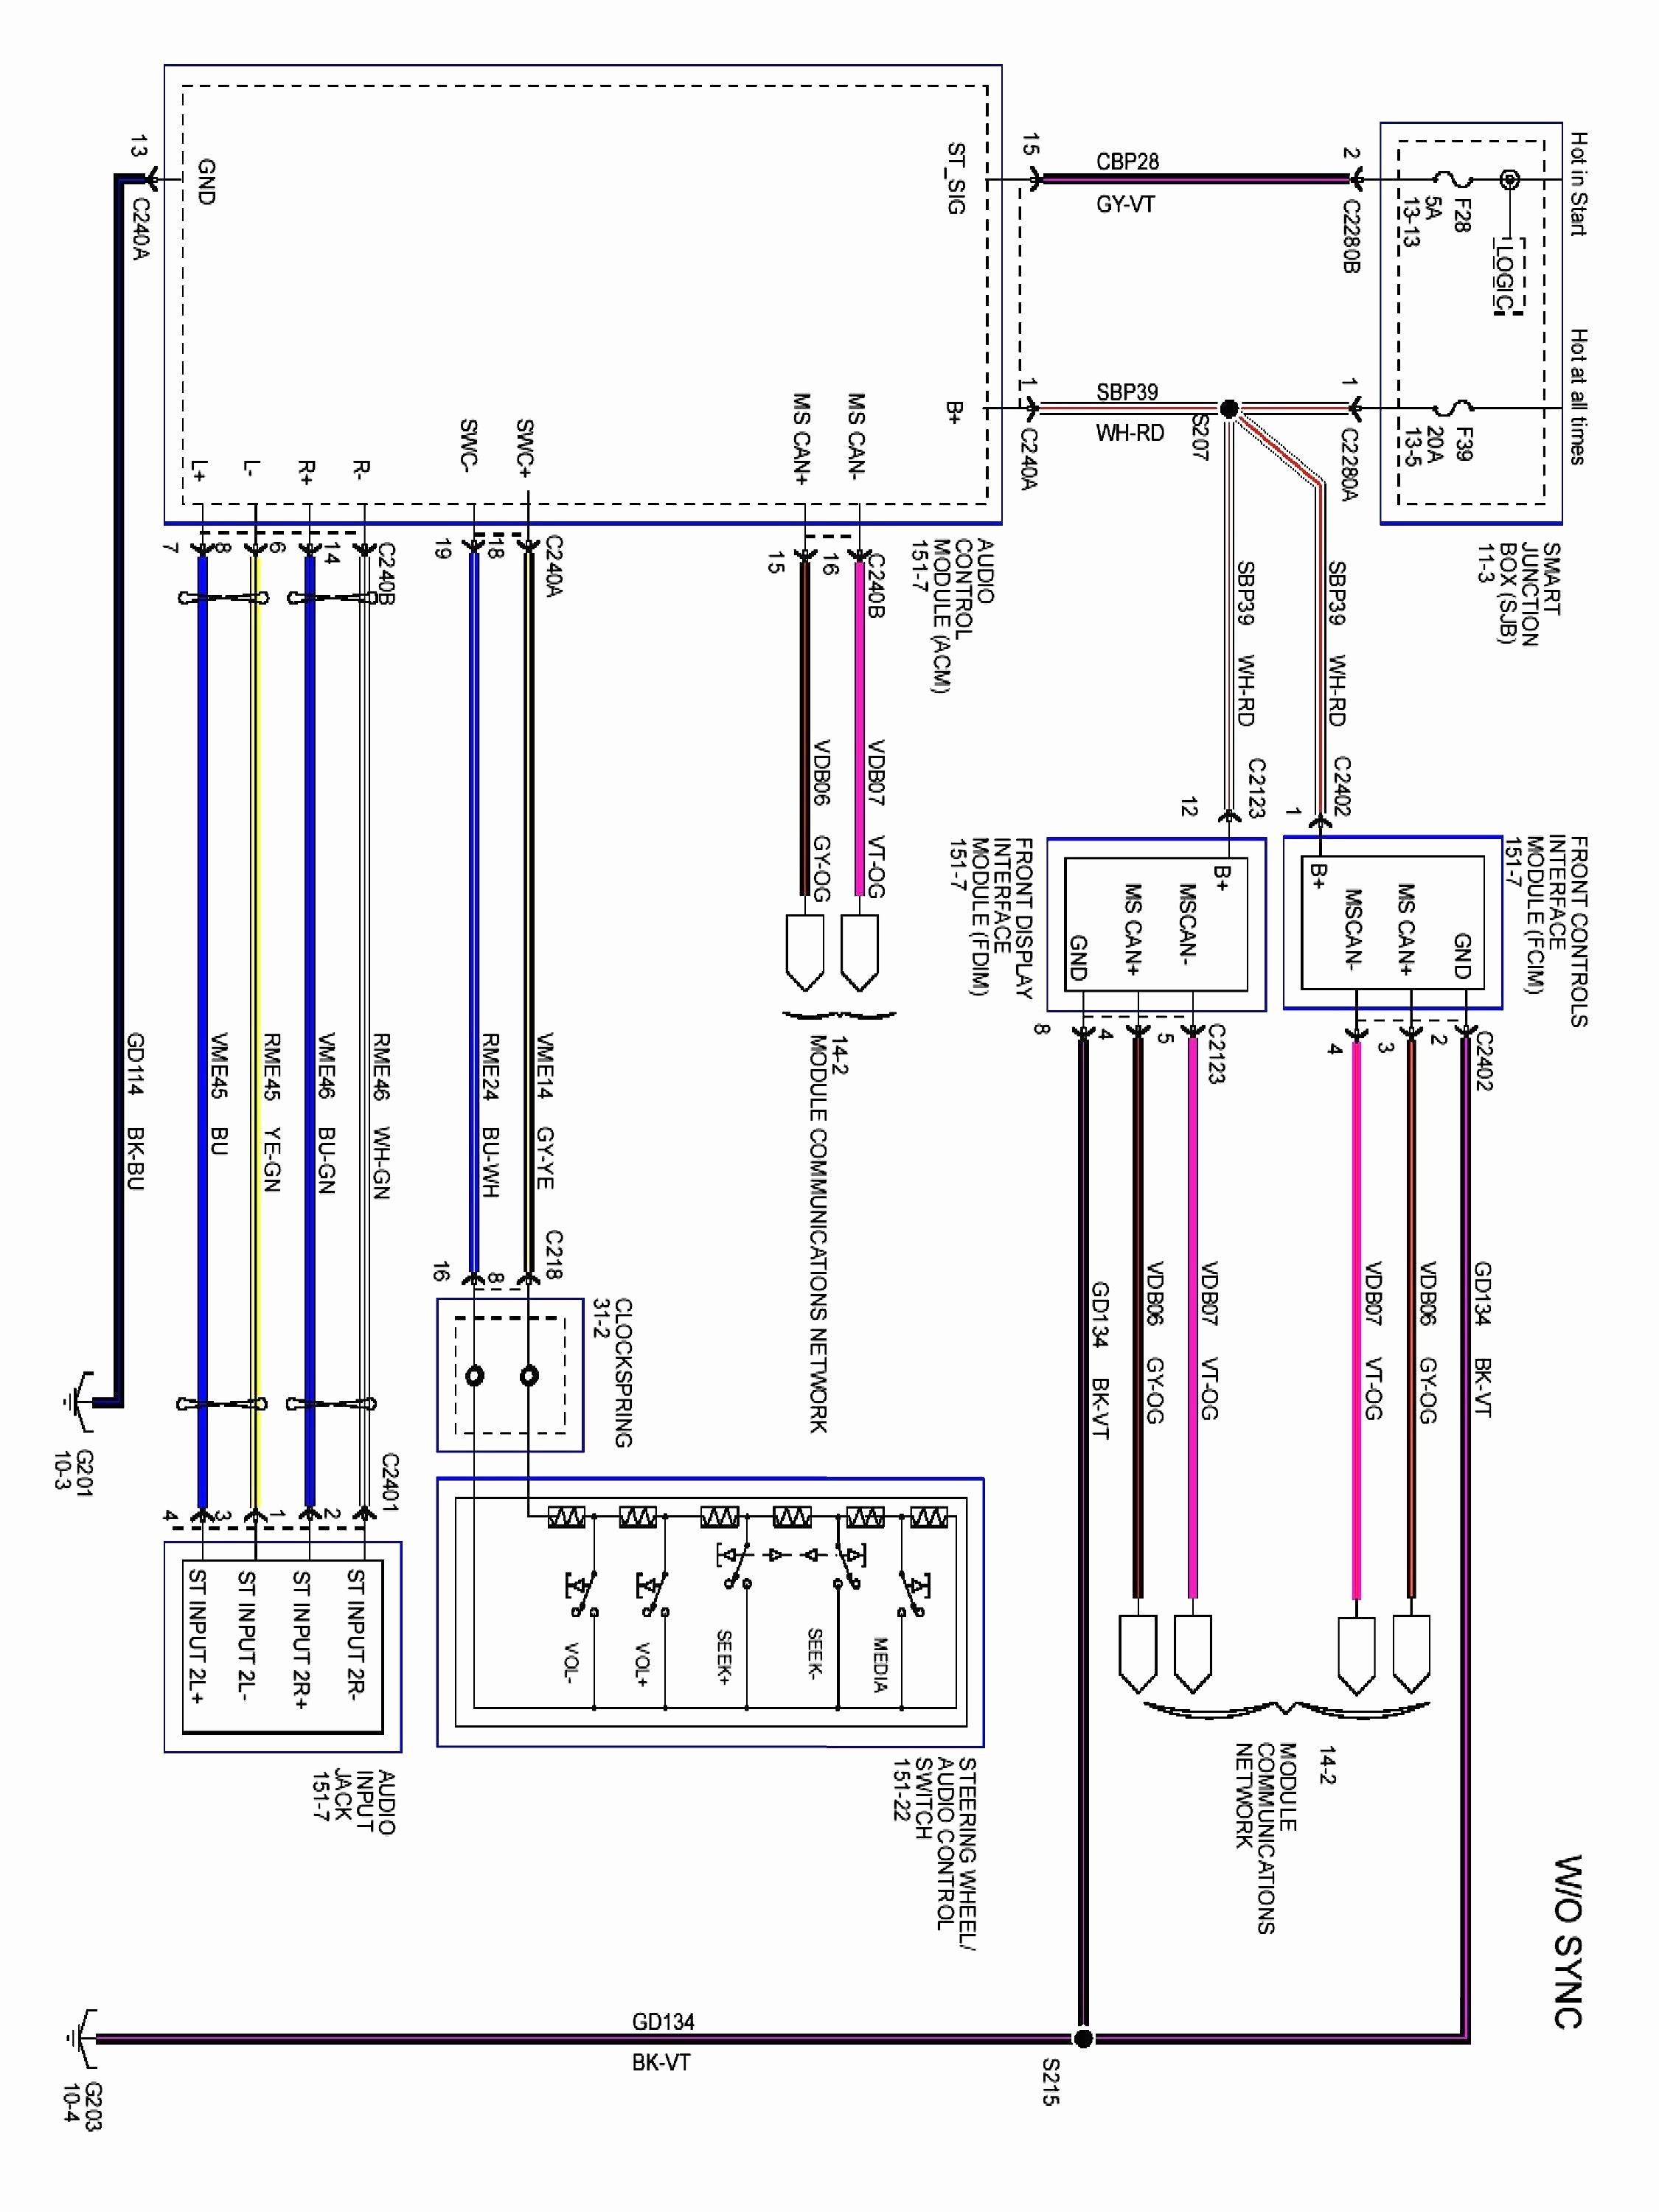 Harley Davidson Clutch Assembly Diagram Opinions About Wiring 2003 Sportster Car Trusted Diagrams U2022 Rh Radkan Co Evo Starter Solenoid